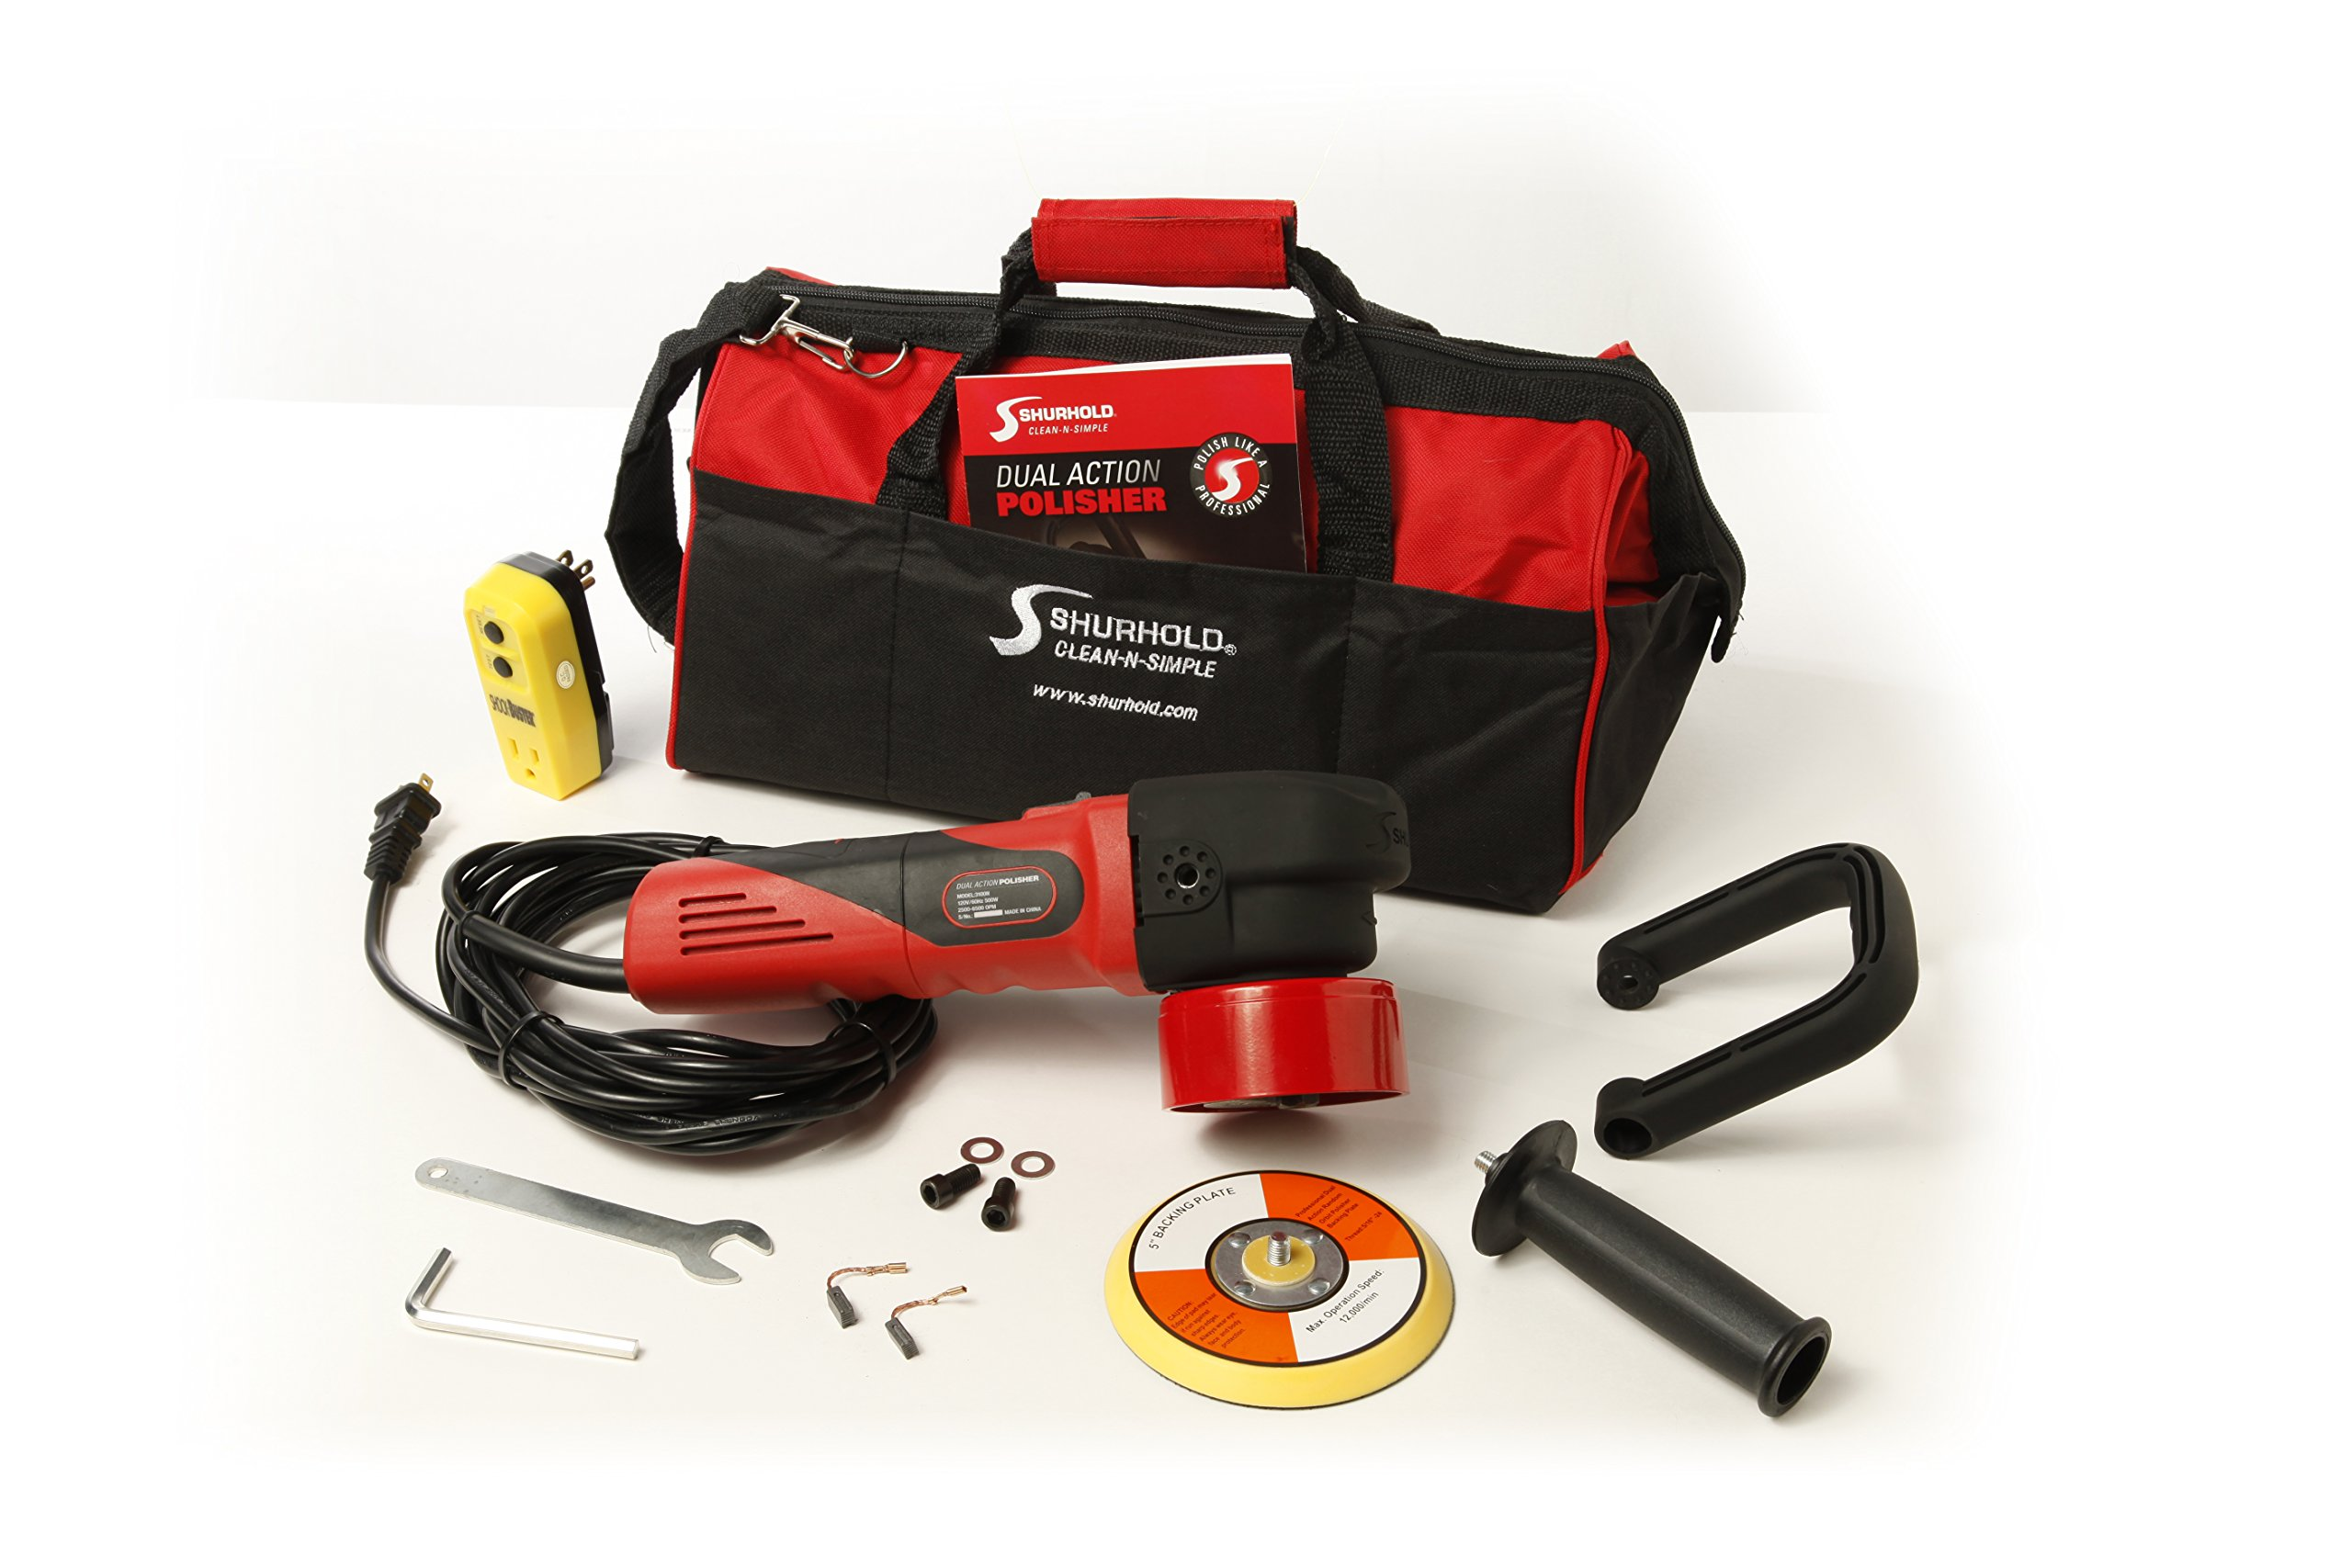 Shurhold 3101 Dual Action Polisher Starter Kit by Shurhold (Image #3)